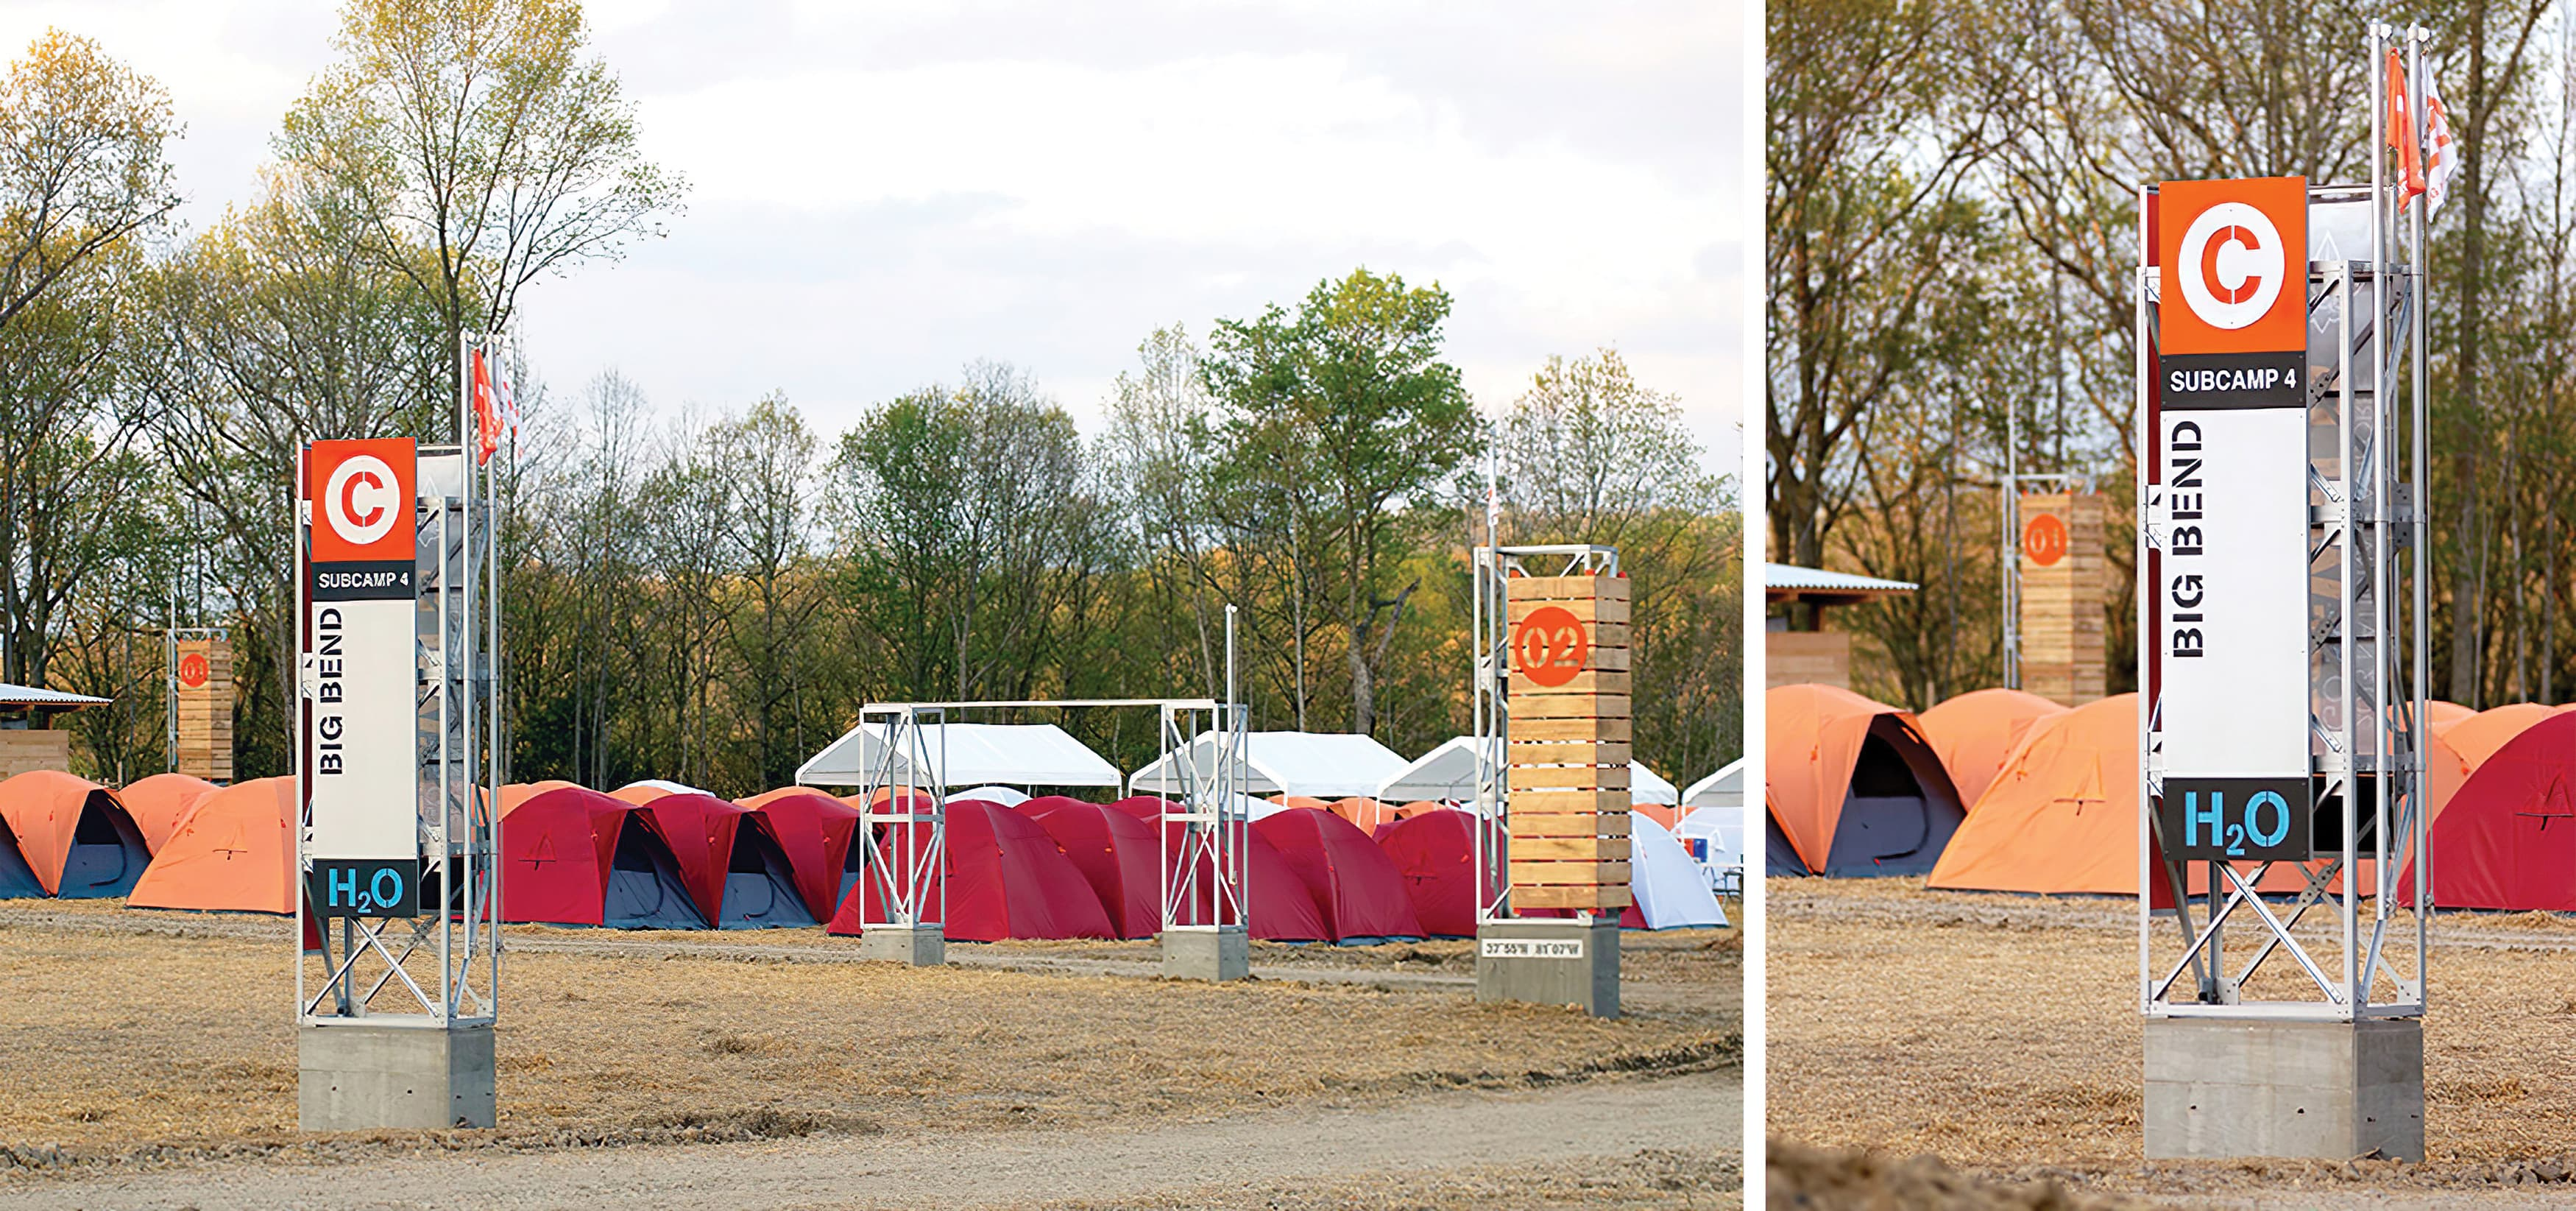 Base Camp Charlie at The Boy Scouts of America's Summit Bechtel Reserve in West Virginia. Wayfinding design.